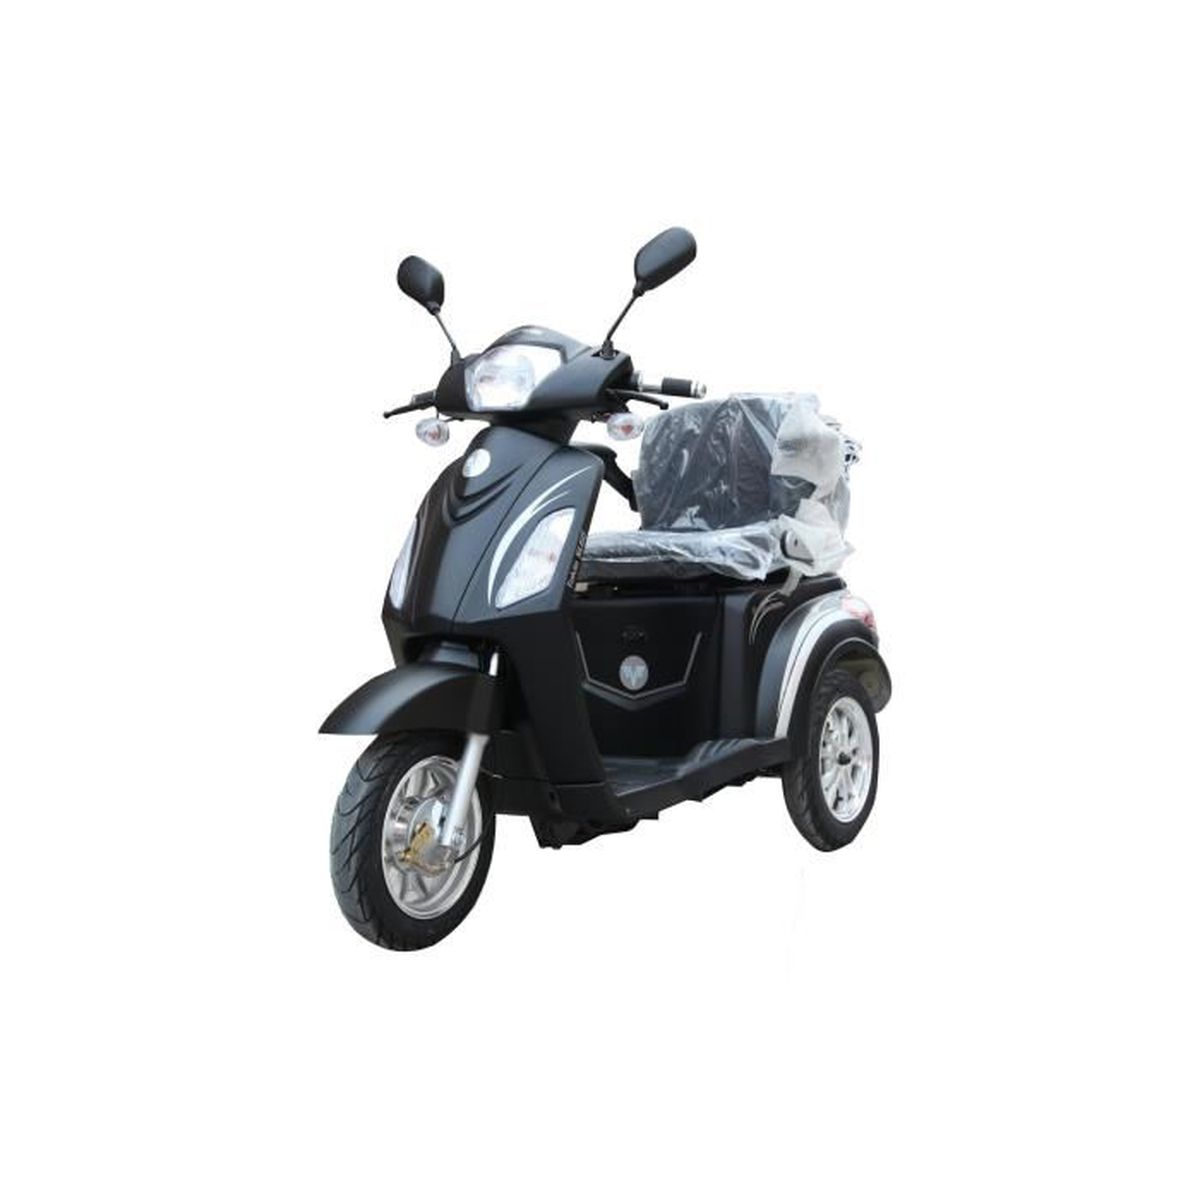 e road scooter 3 roues 1500 w batterie lithium noir achat vente scooter e road scooter 3. Black Bedroom Furniture Sets. Home Design Ideas